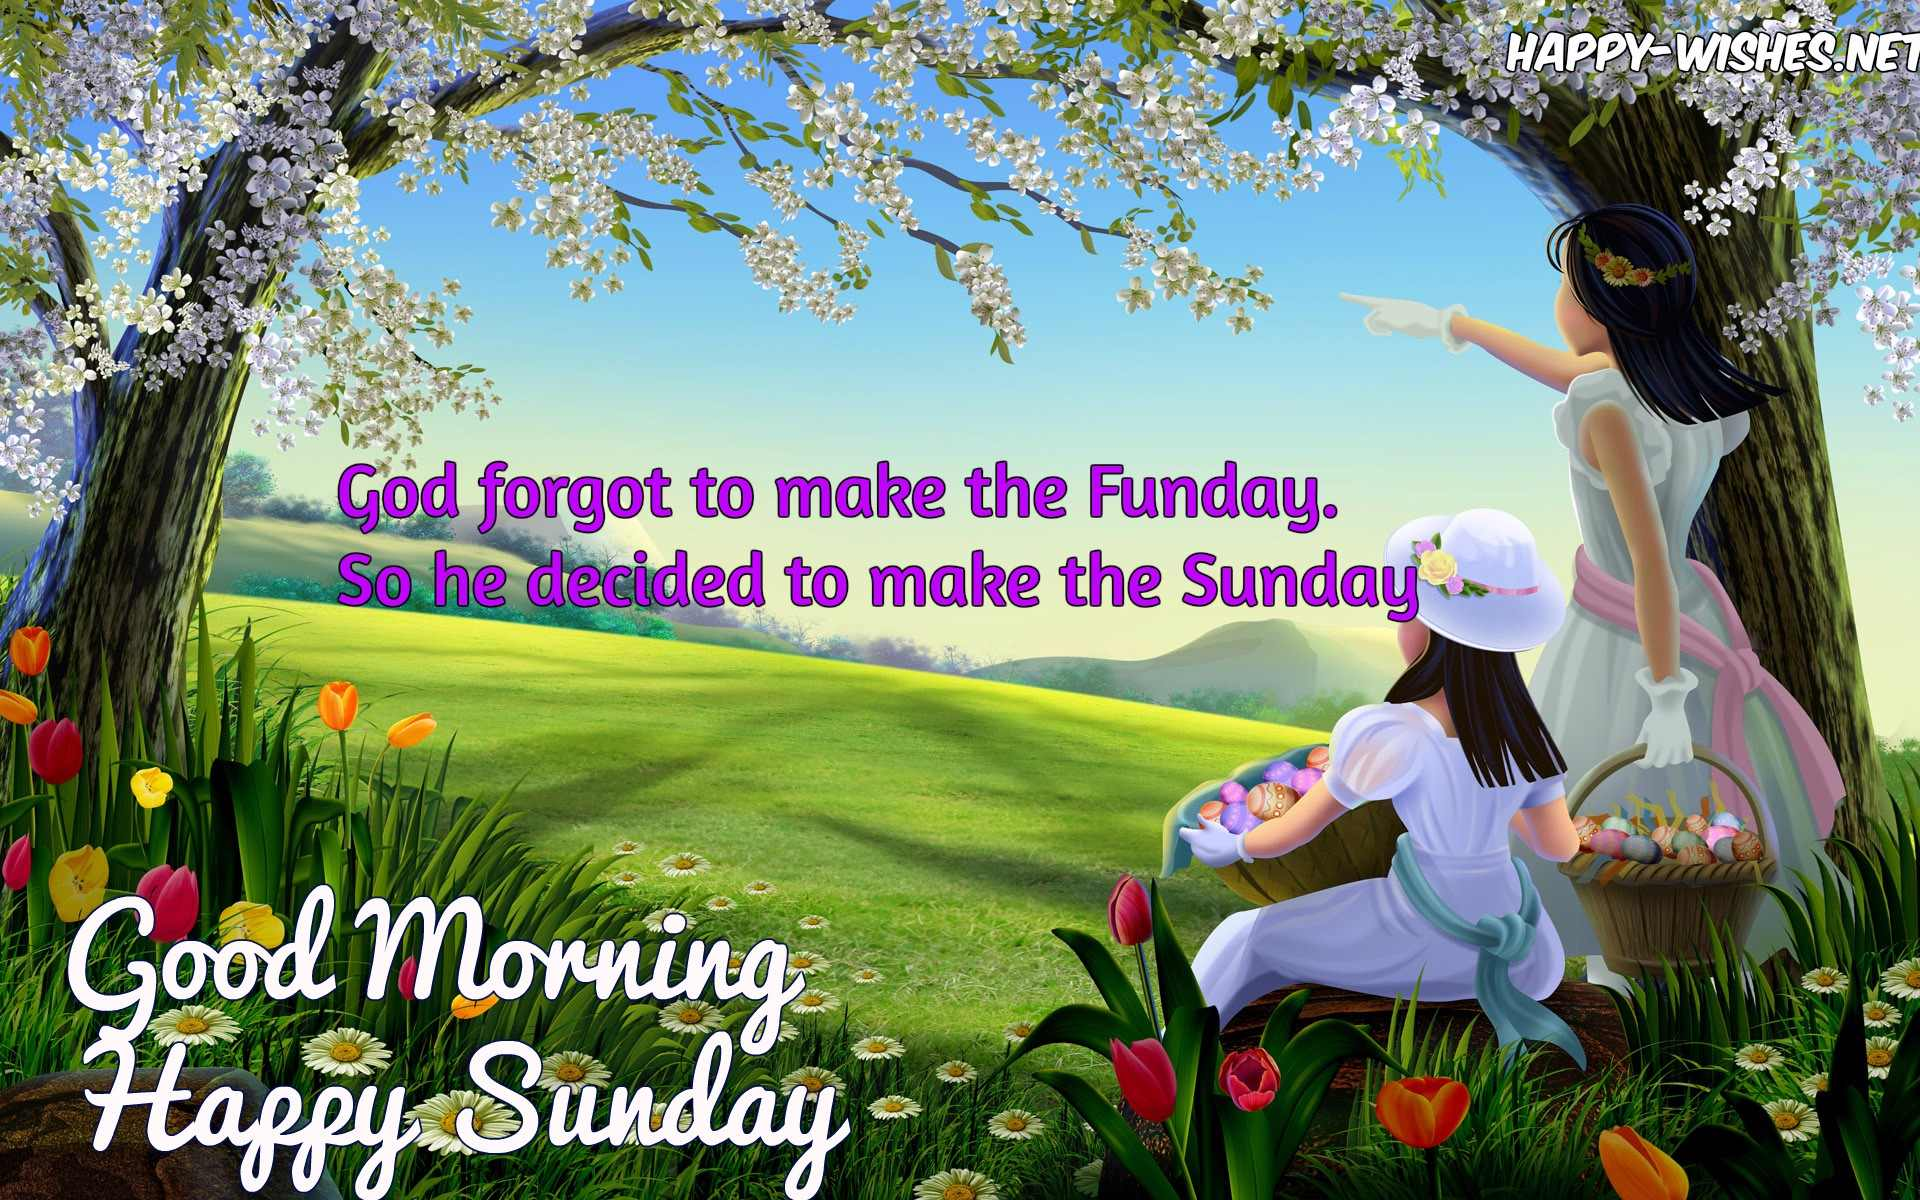 Good morning wishes on sunday quotes